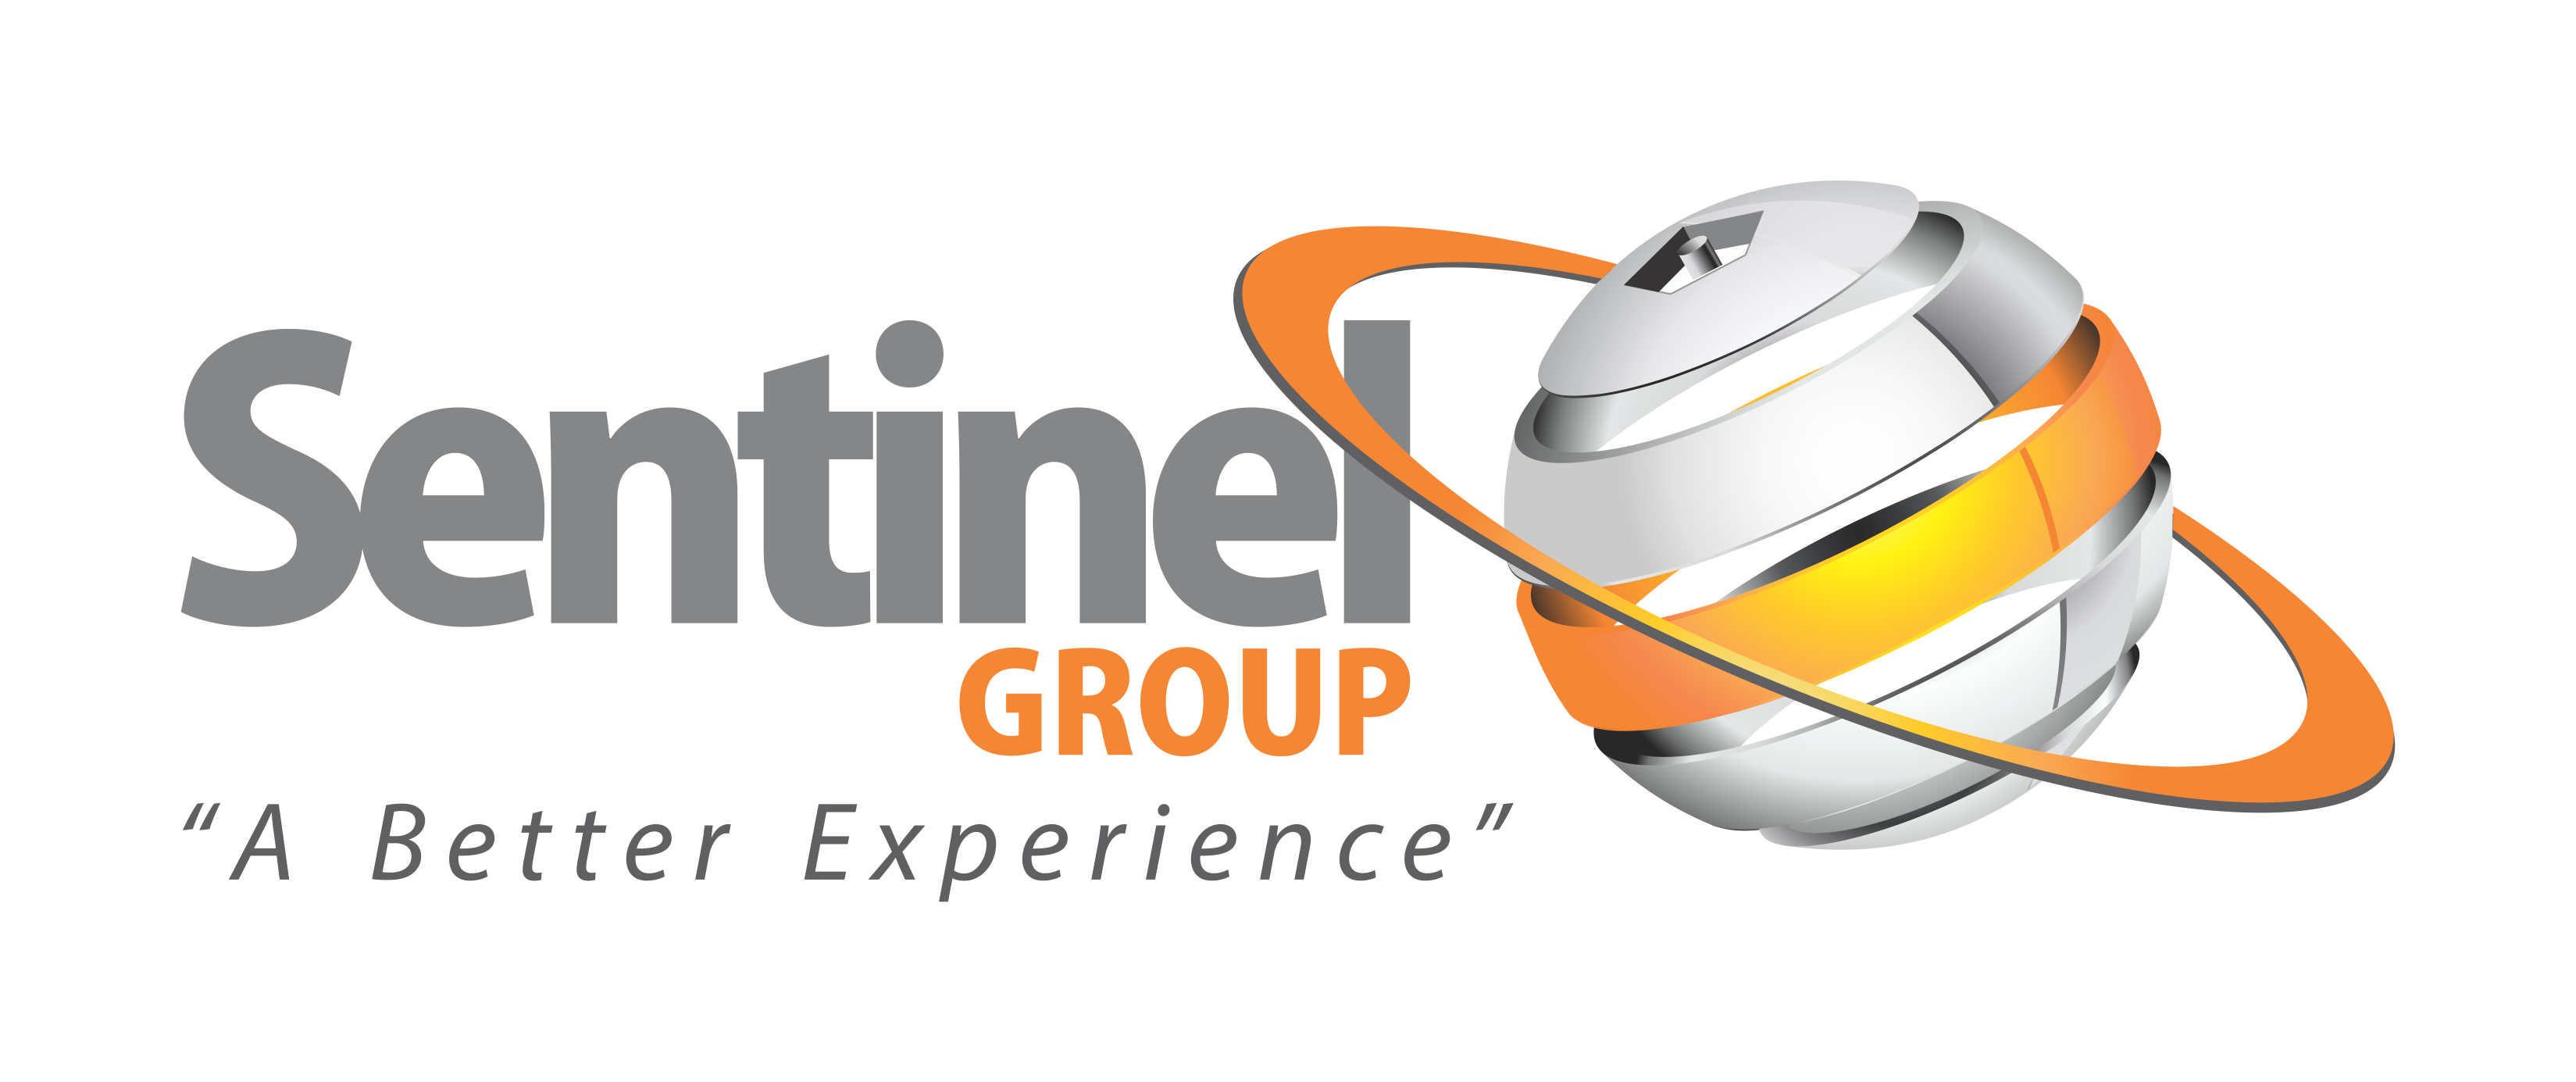 Sentinel Group logo